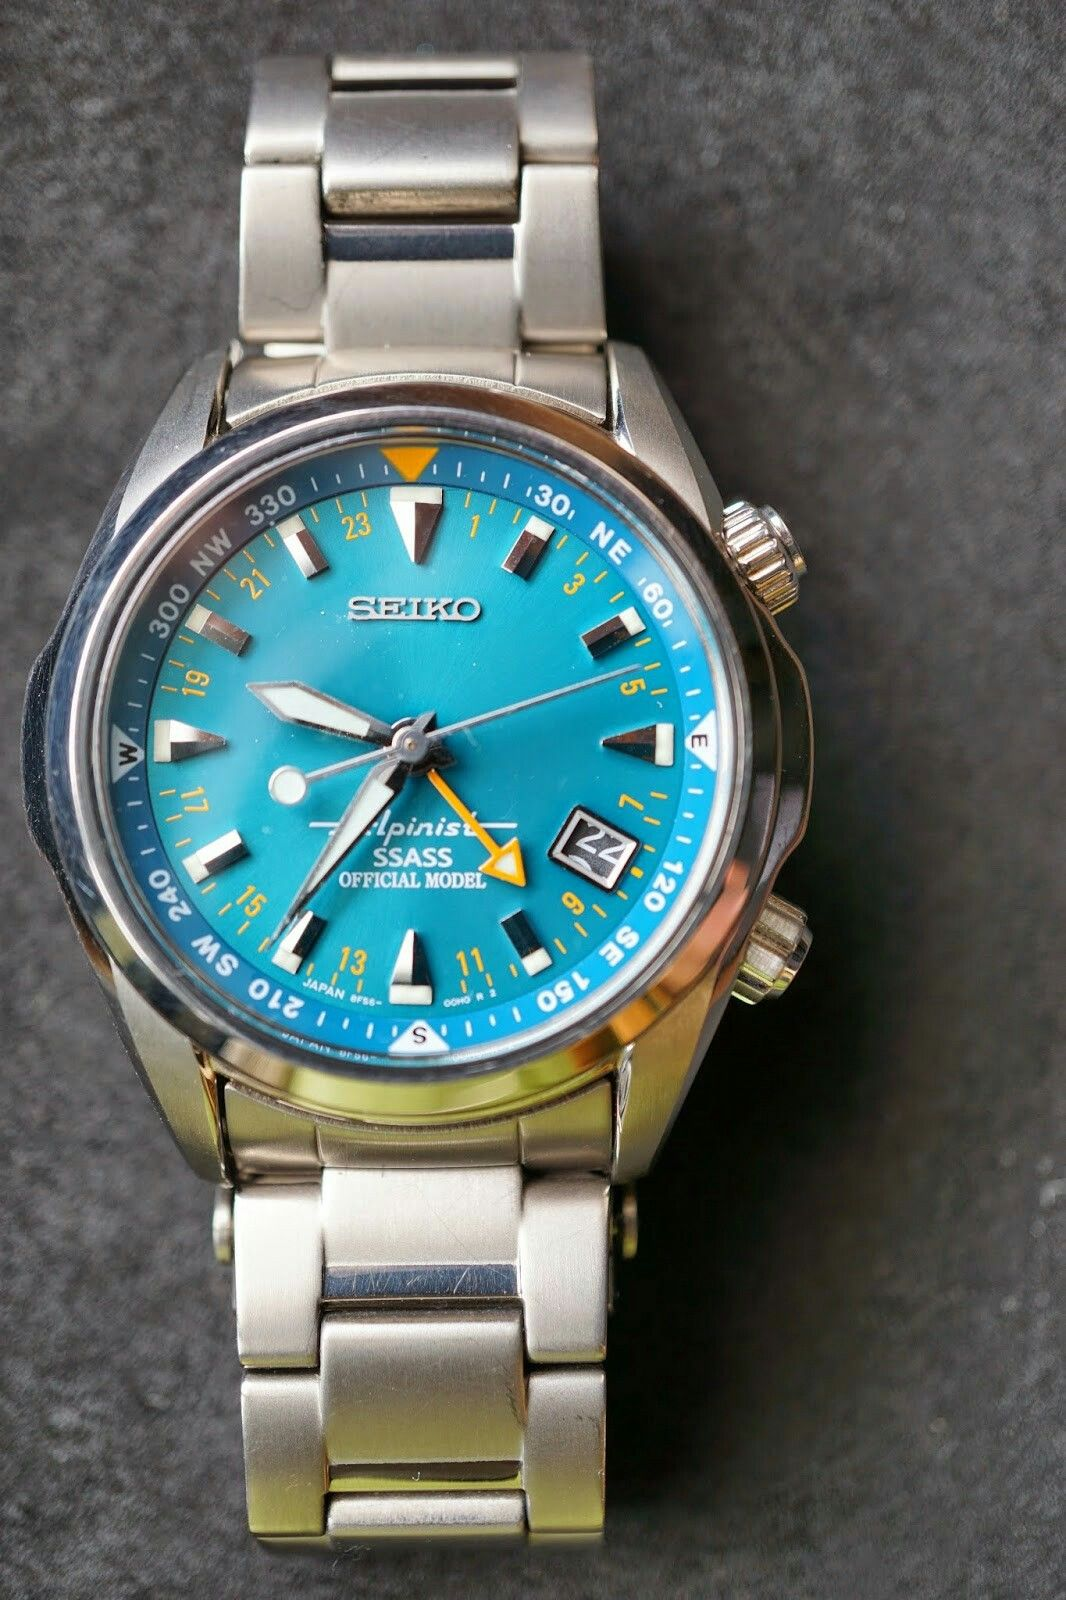 Seiko Alpinist SSASS SSASS Official limited model. It